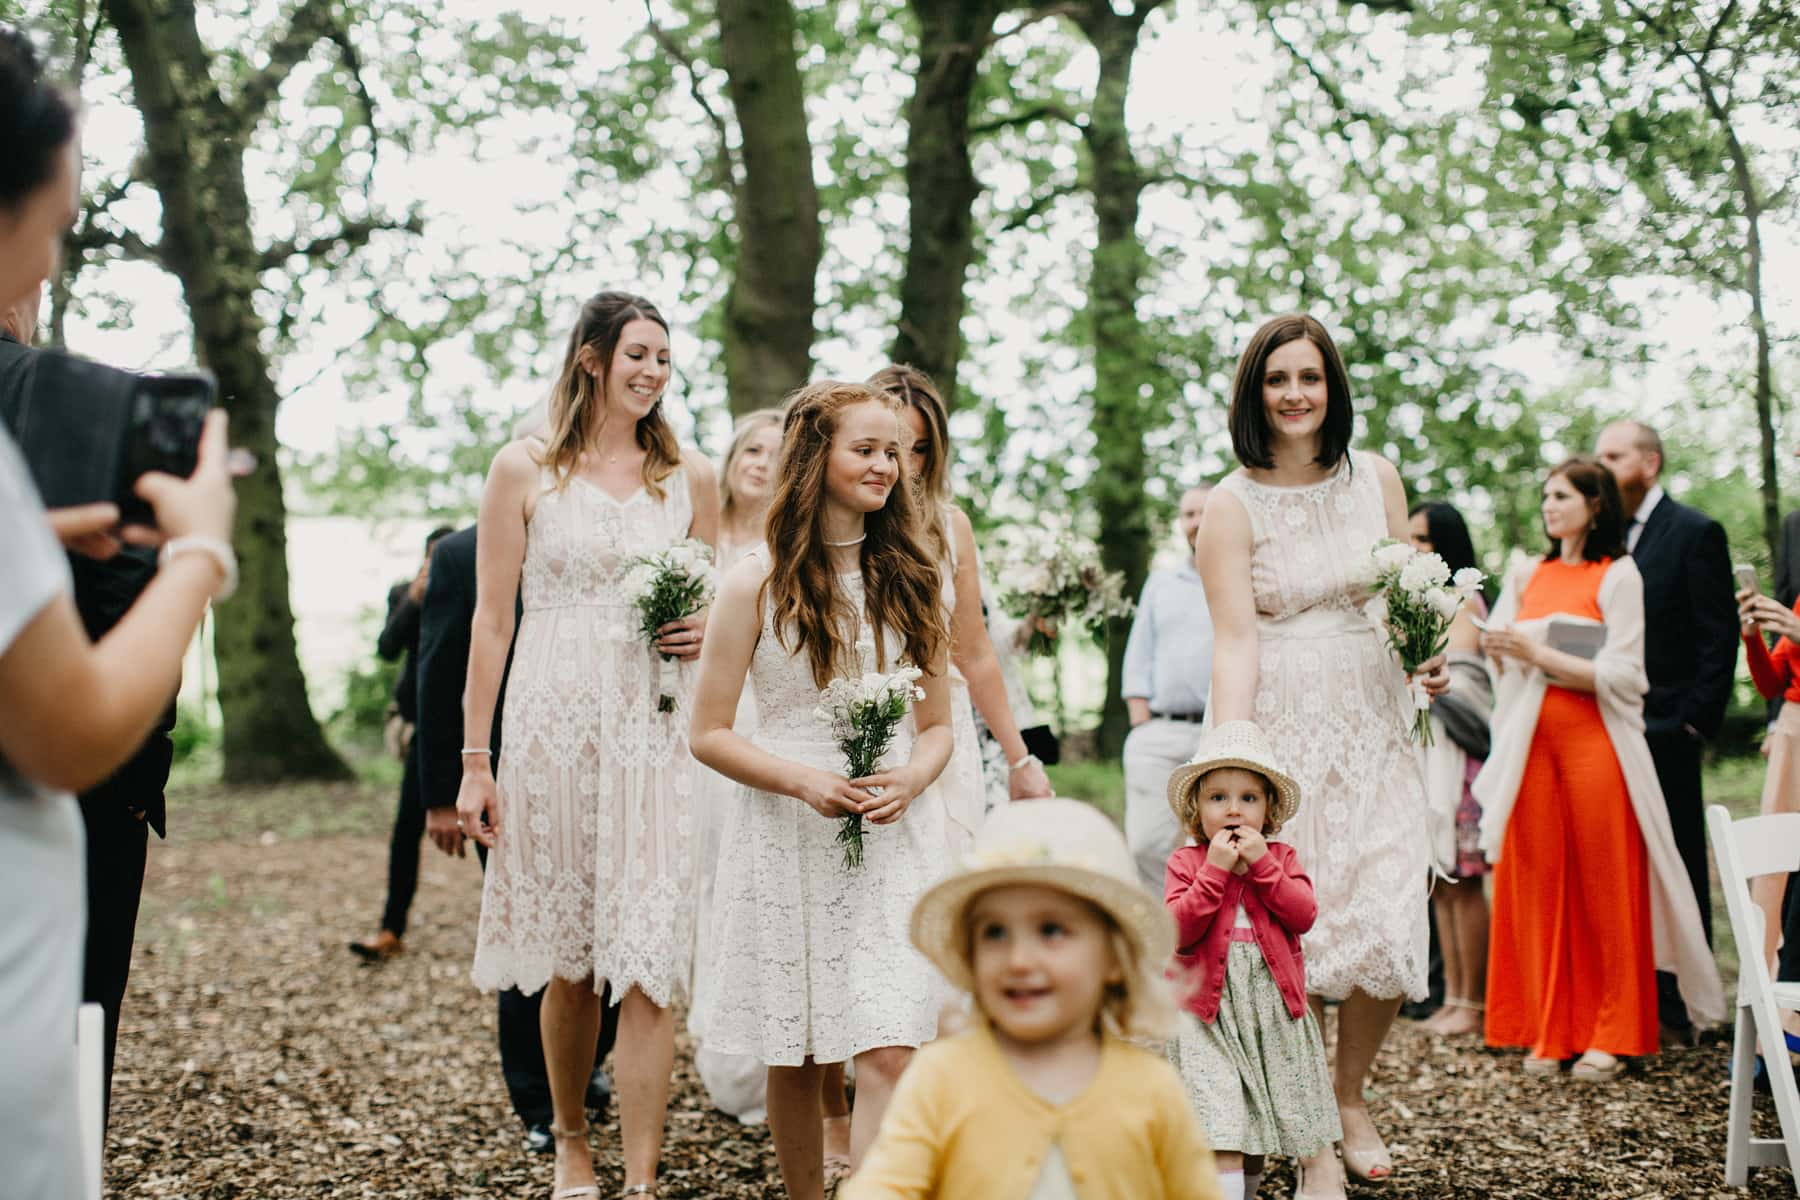 relaxed outdoor wedding in a field